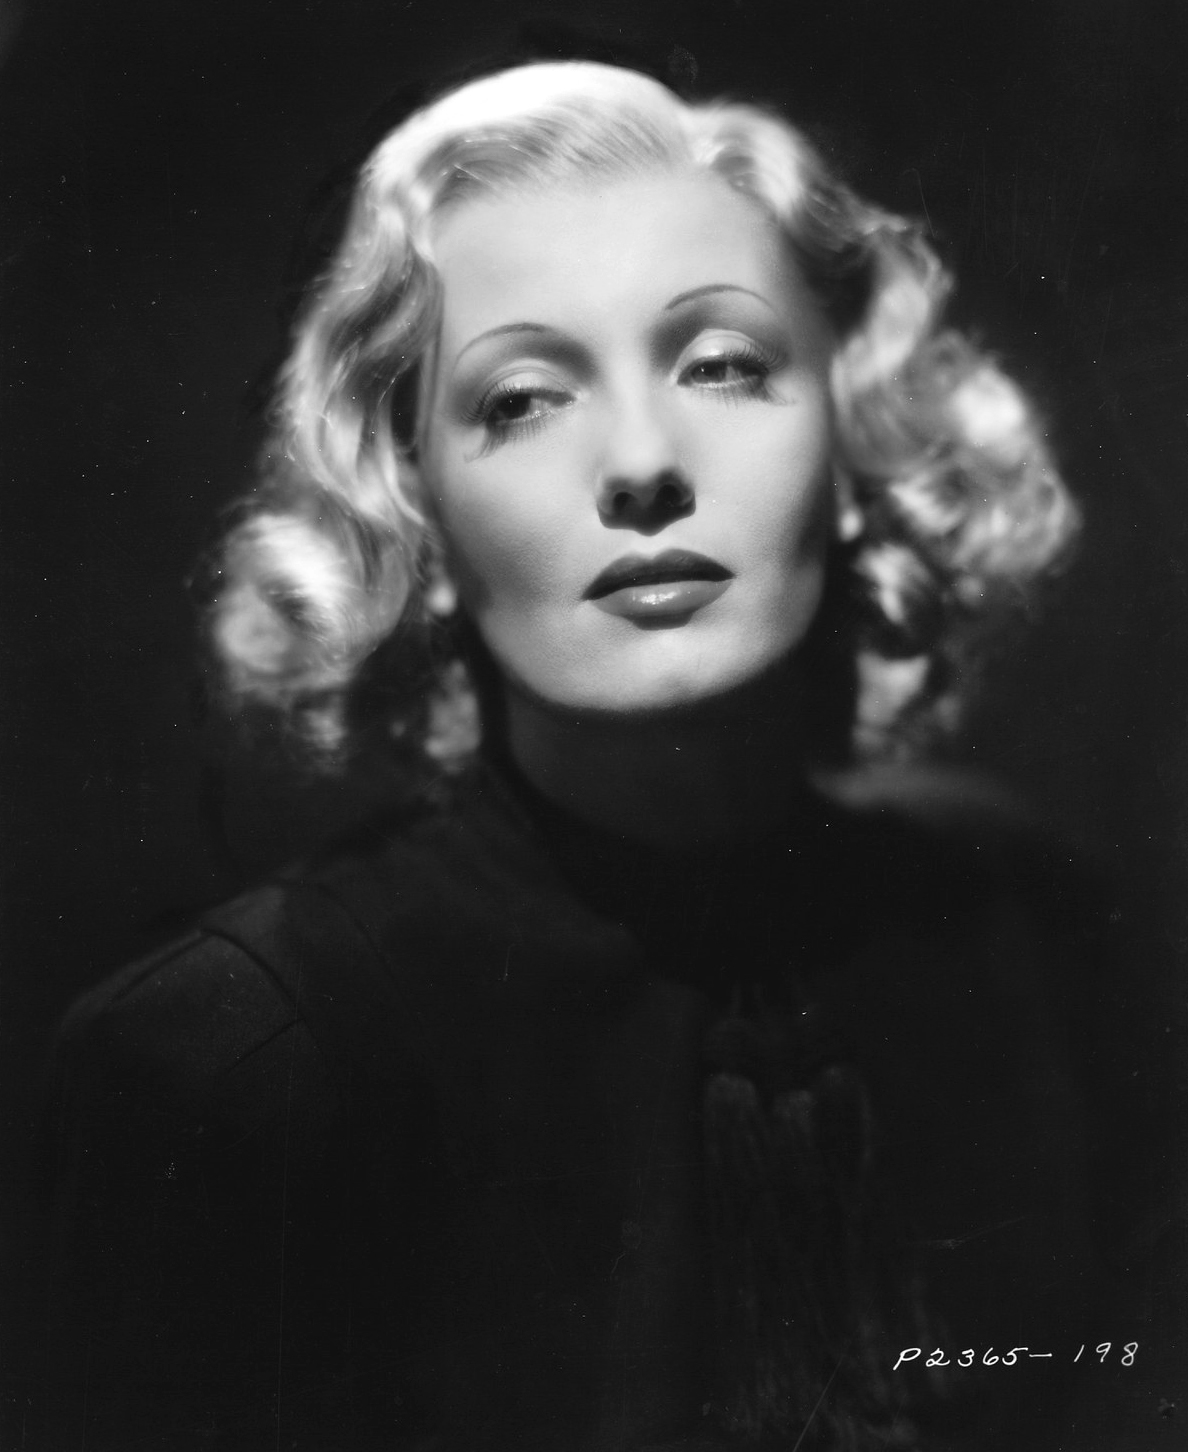 isa miranda dietrich actress the lux on cinema 30s 40s fashion history the lux on